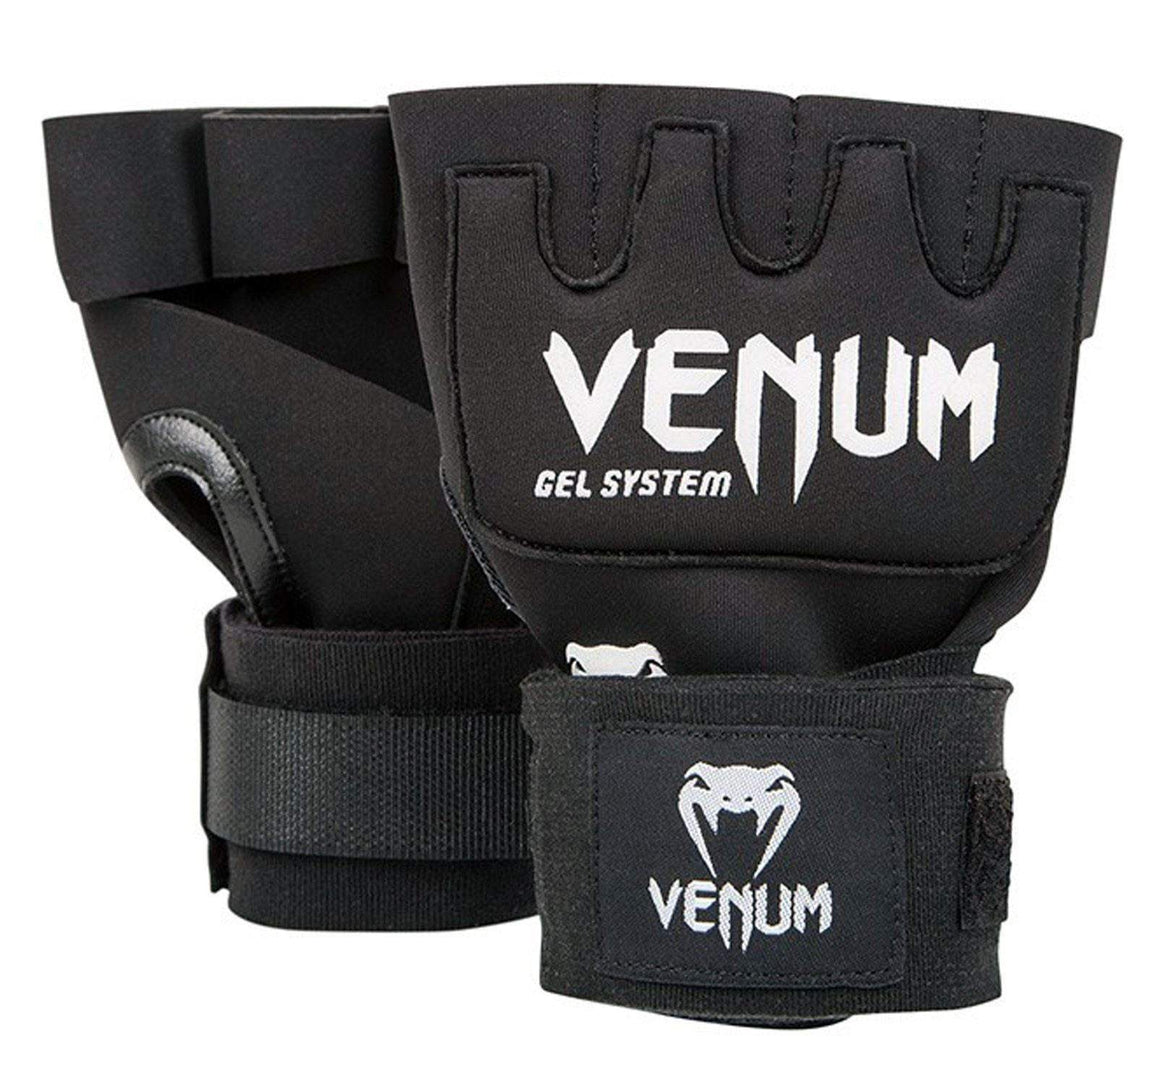 Venum Kontact Gel Glove Wraps Front and Back View